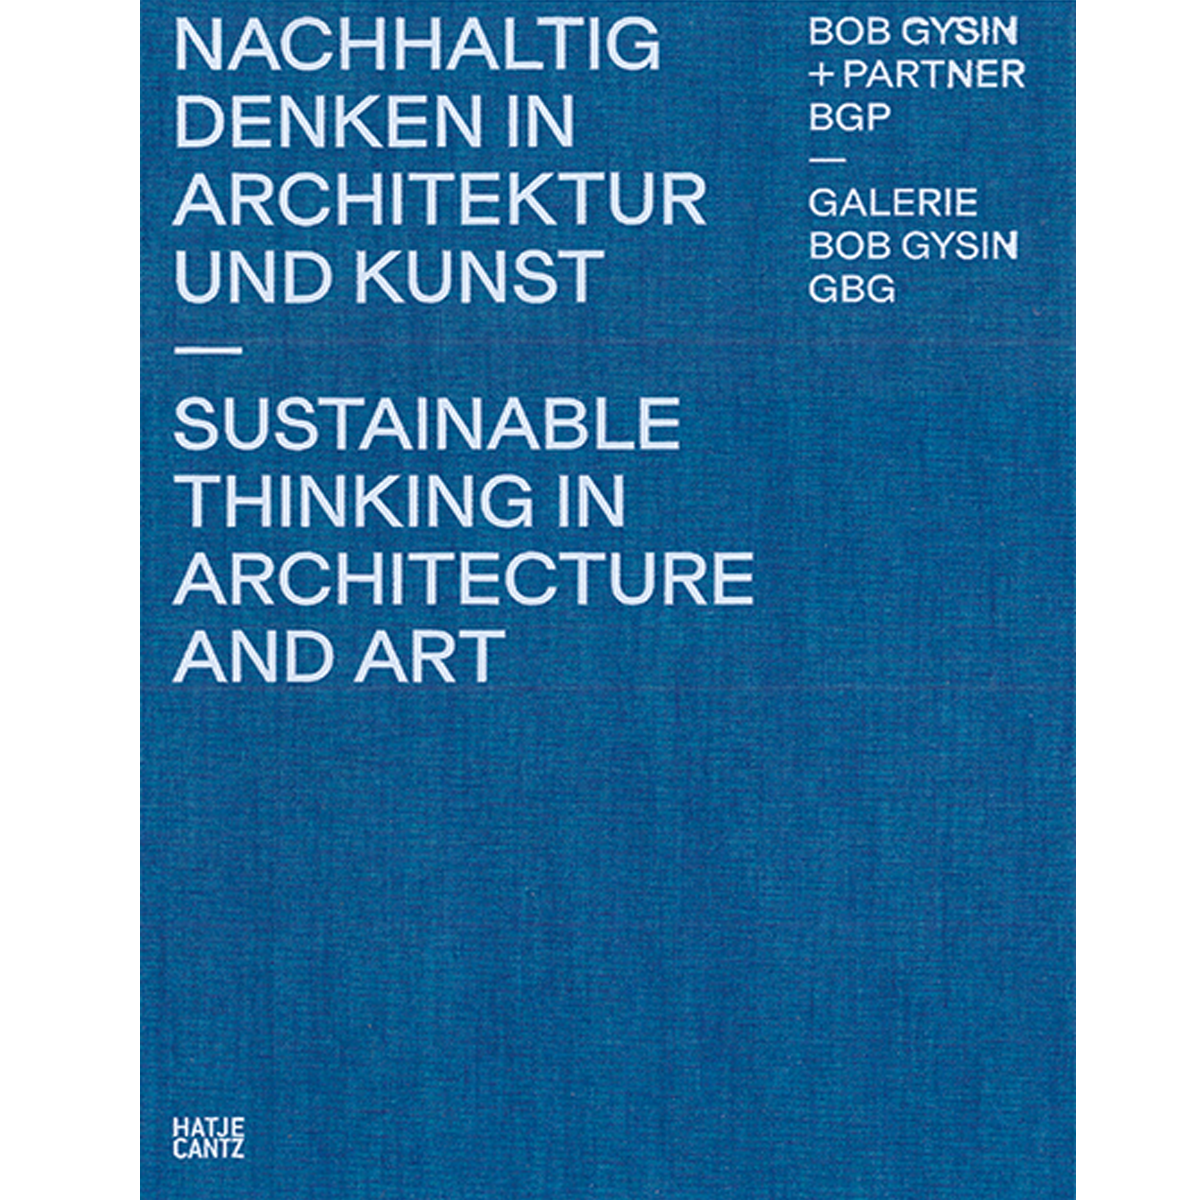 Sustainable Thinking in Architecture and Art